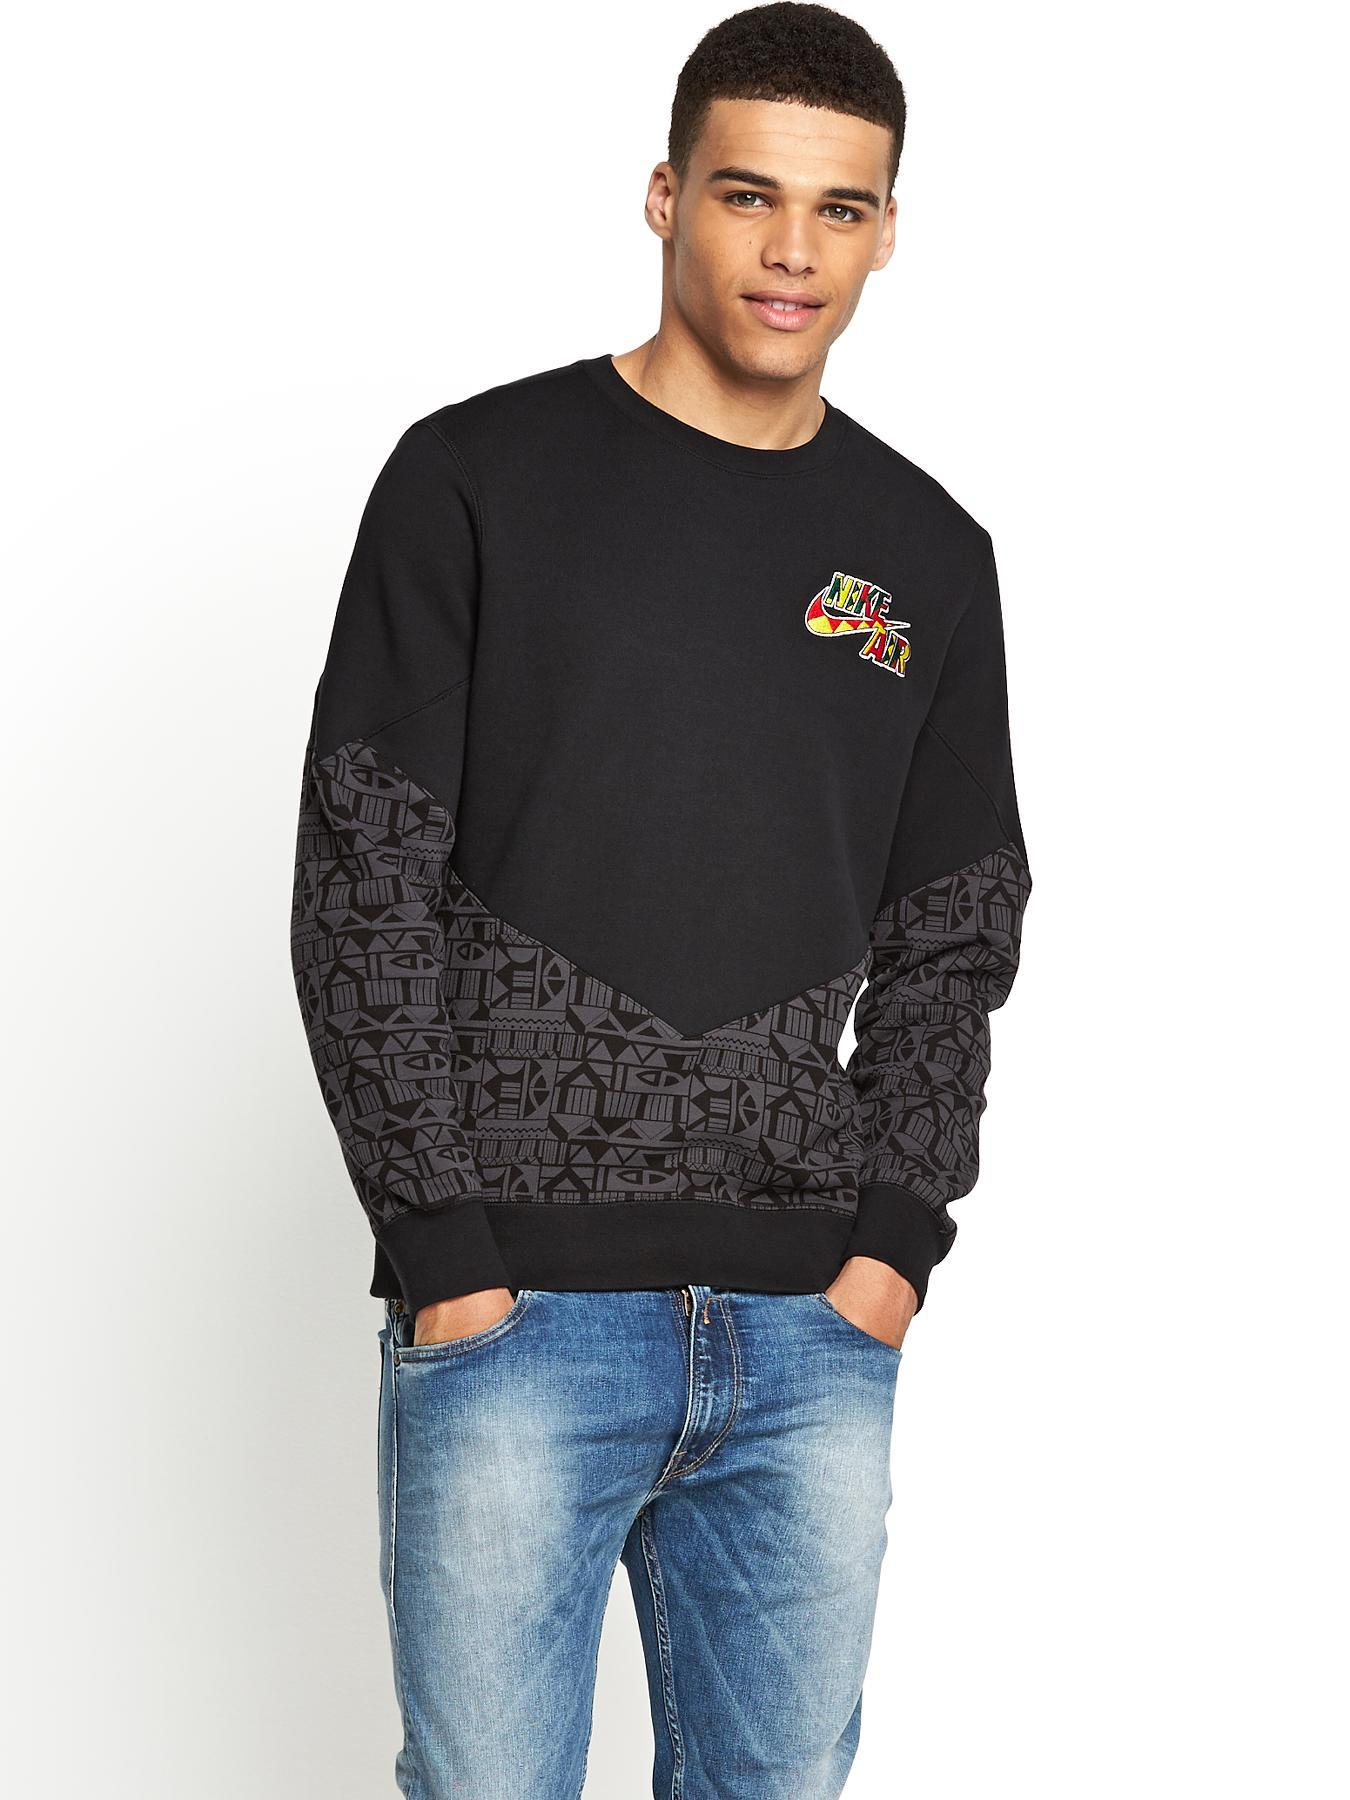 Shop a wide selection of Men's Crew Neck Hoodies & Sweatshirts at DICK'S Sporting Goods and order online for the finest quality products from the top brands you trust.